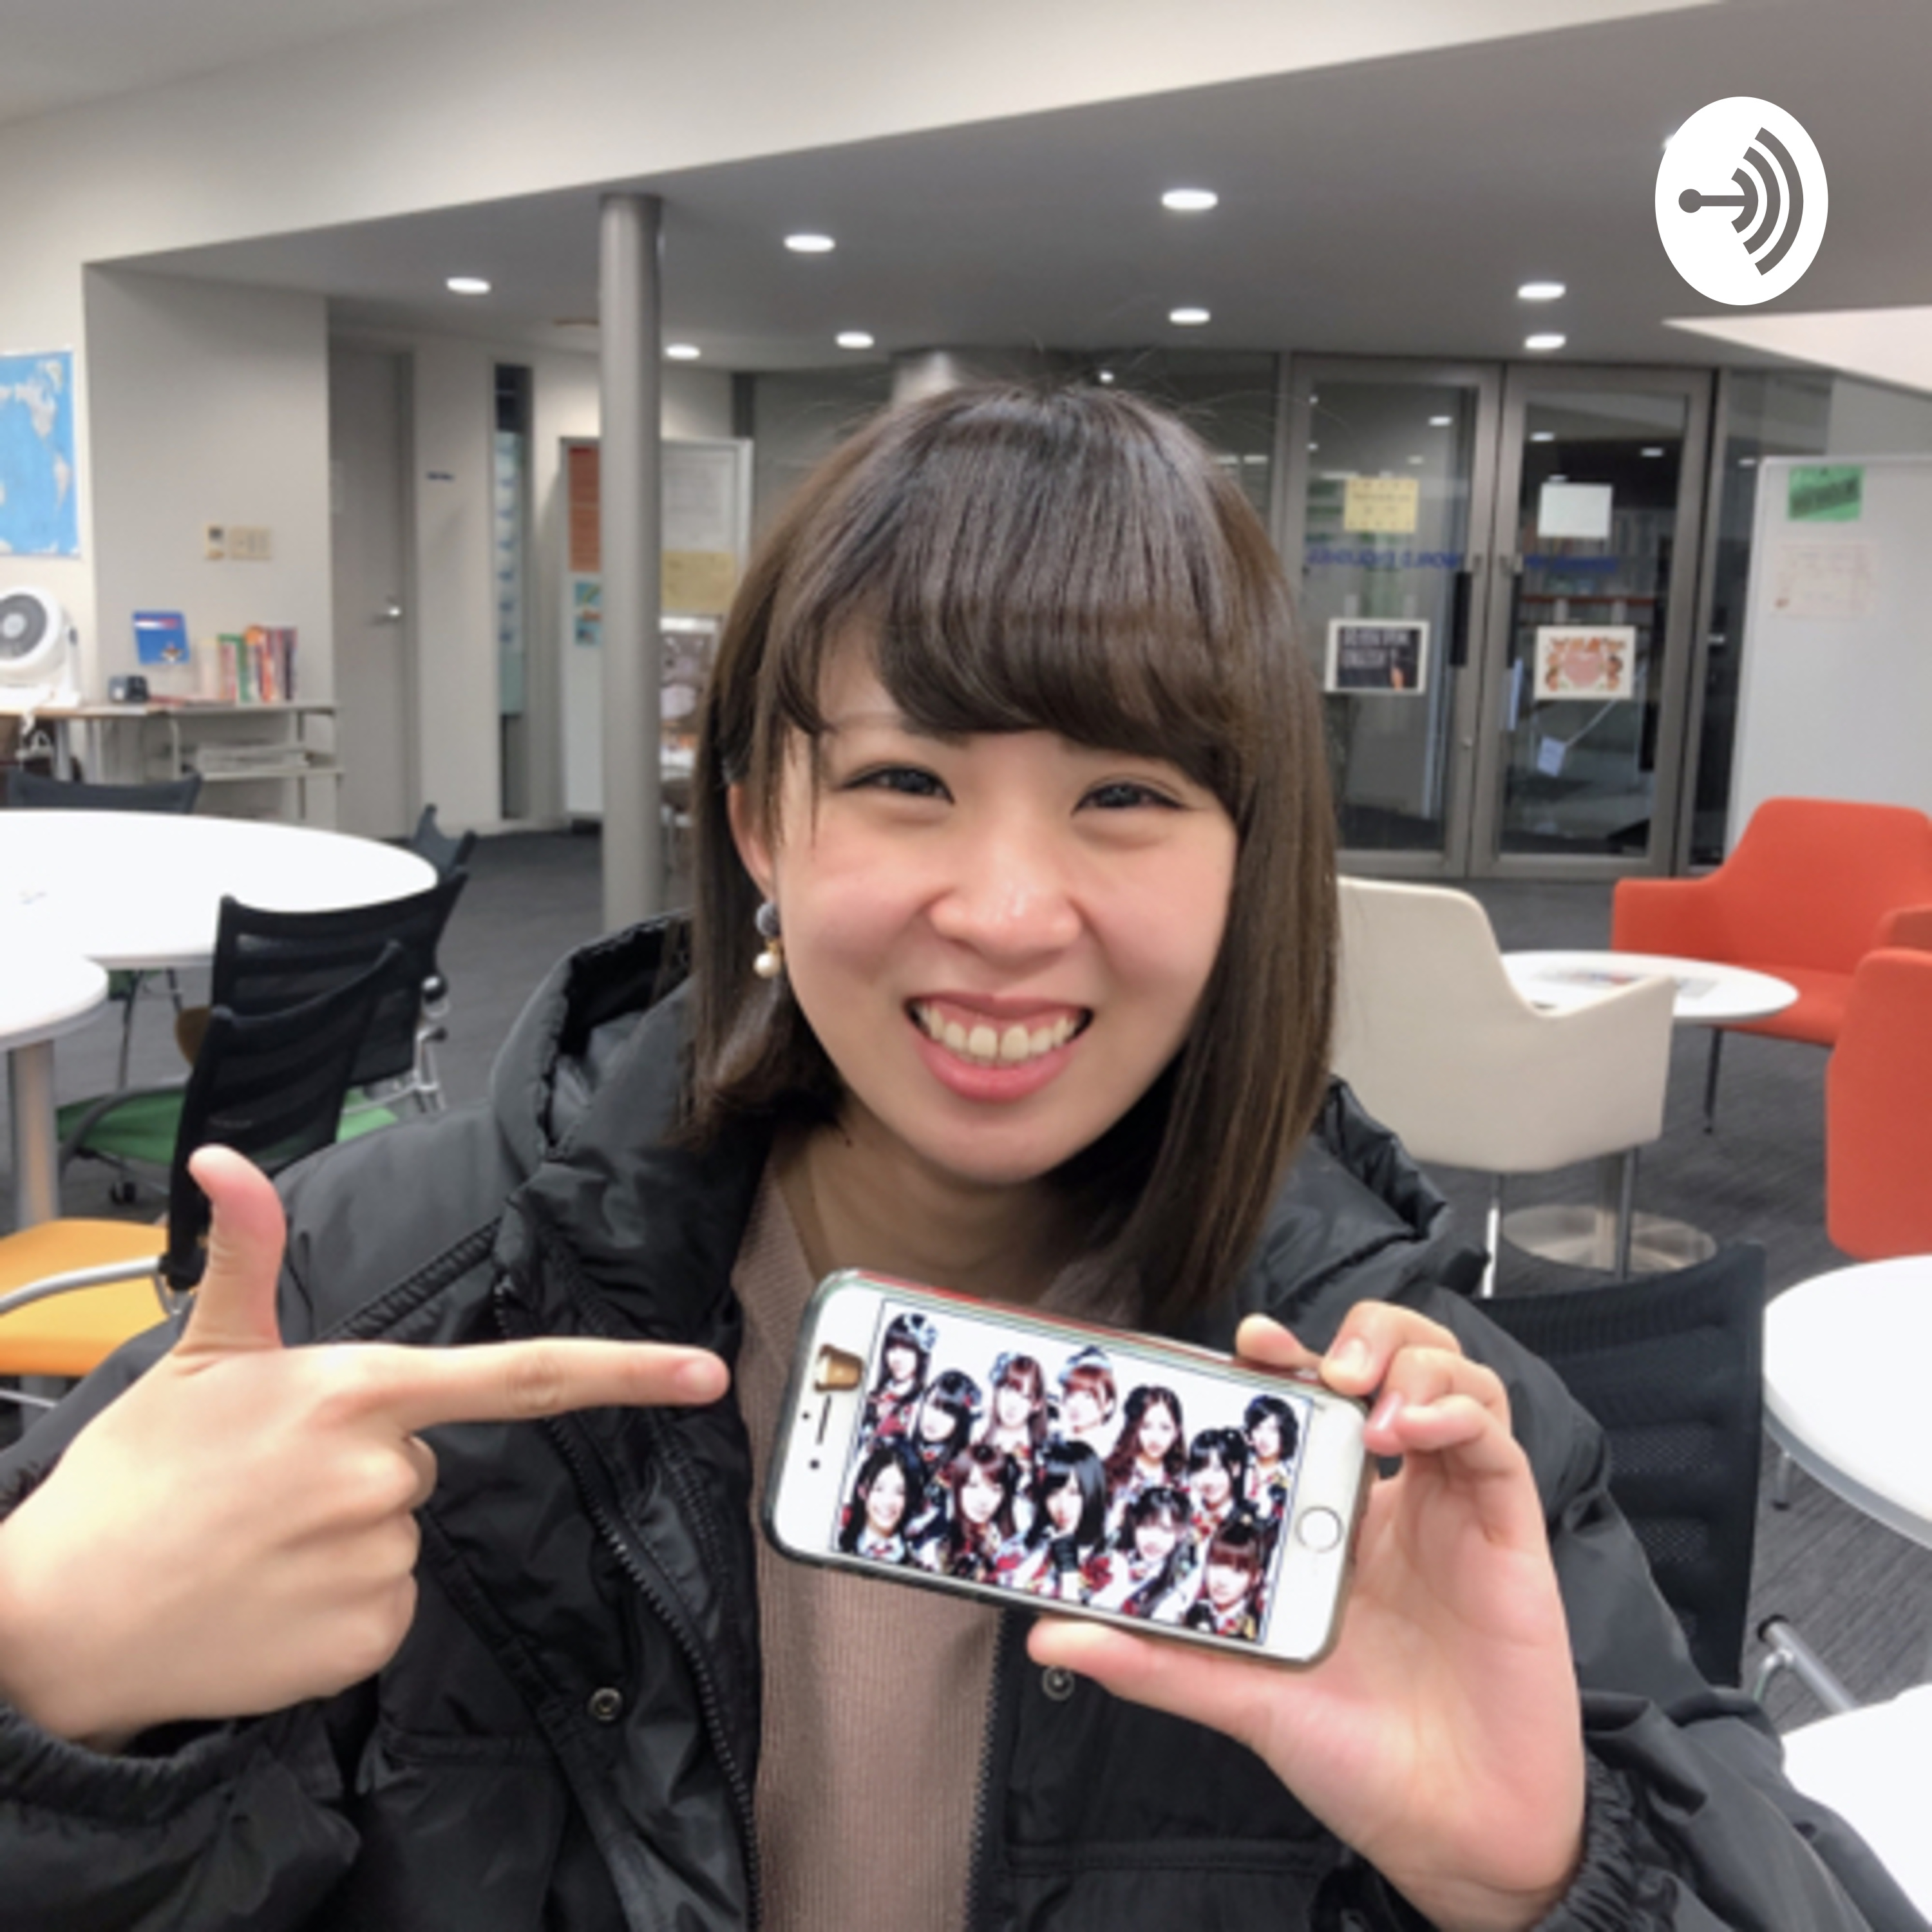 The Greatest AKB48 | Listen via Stitcher for Podcasts